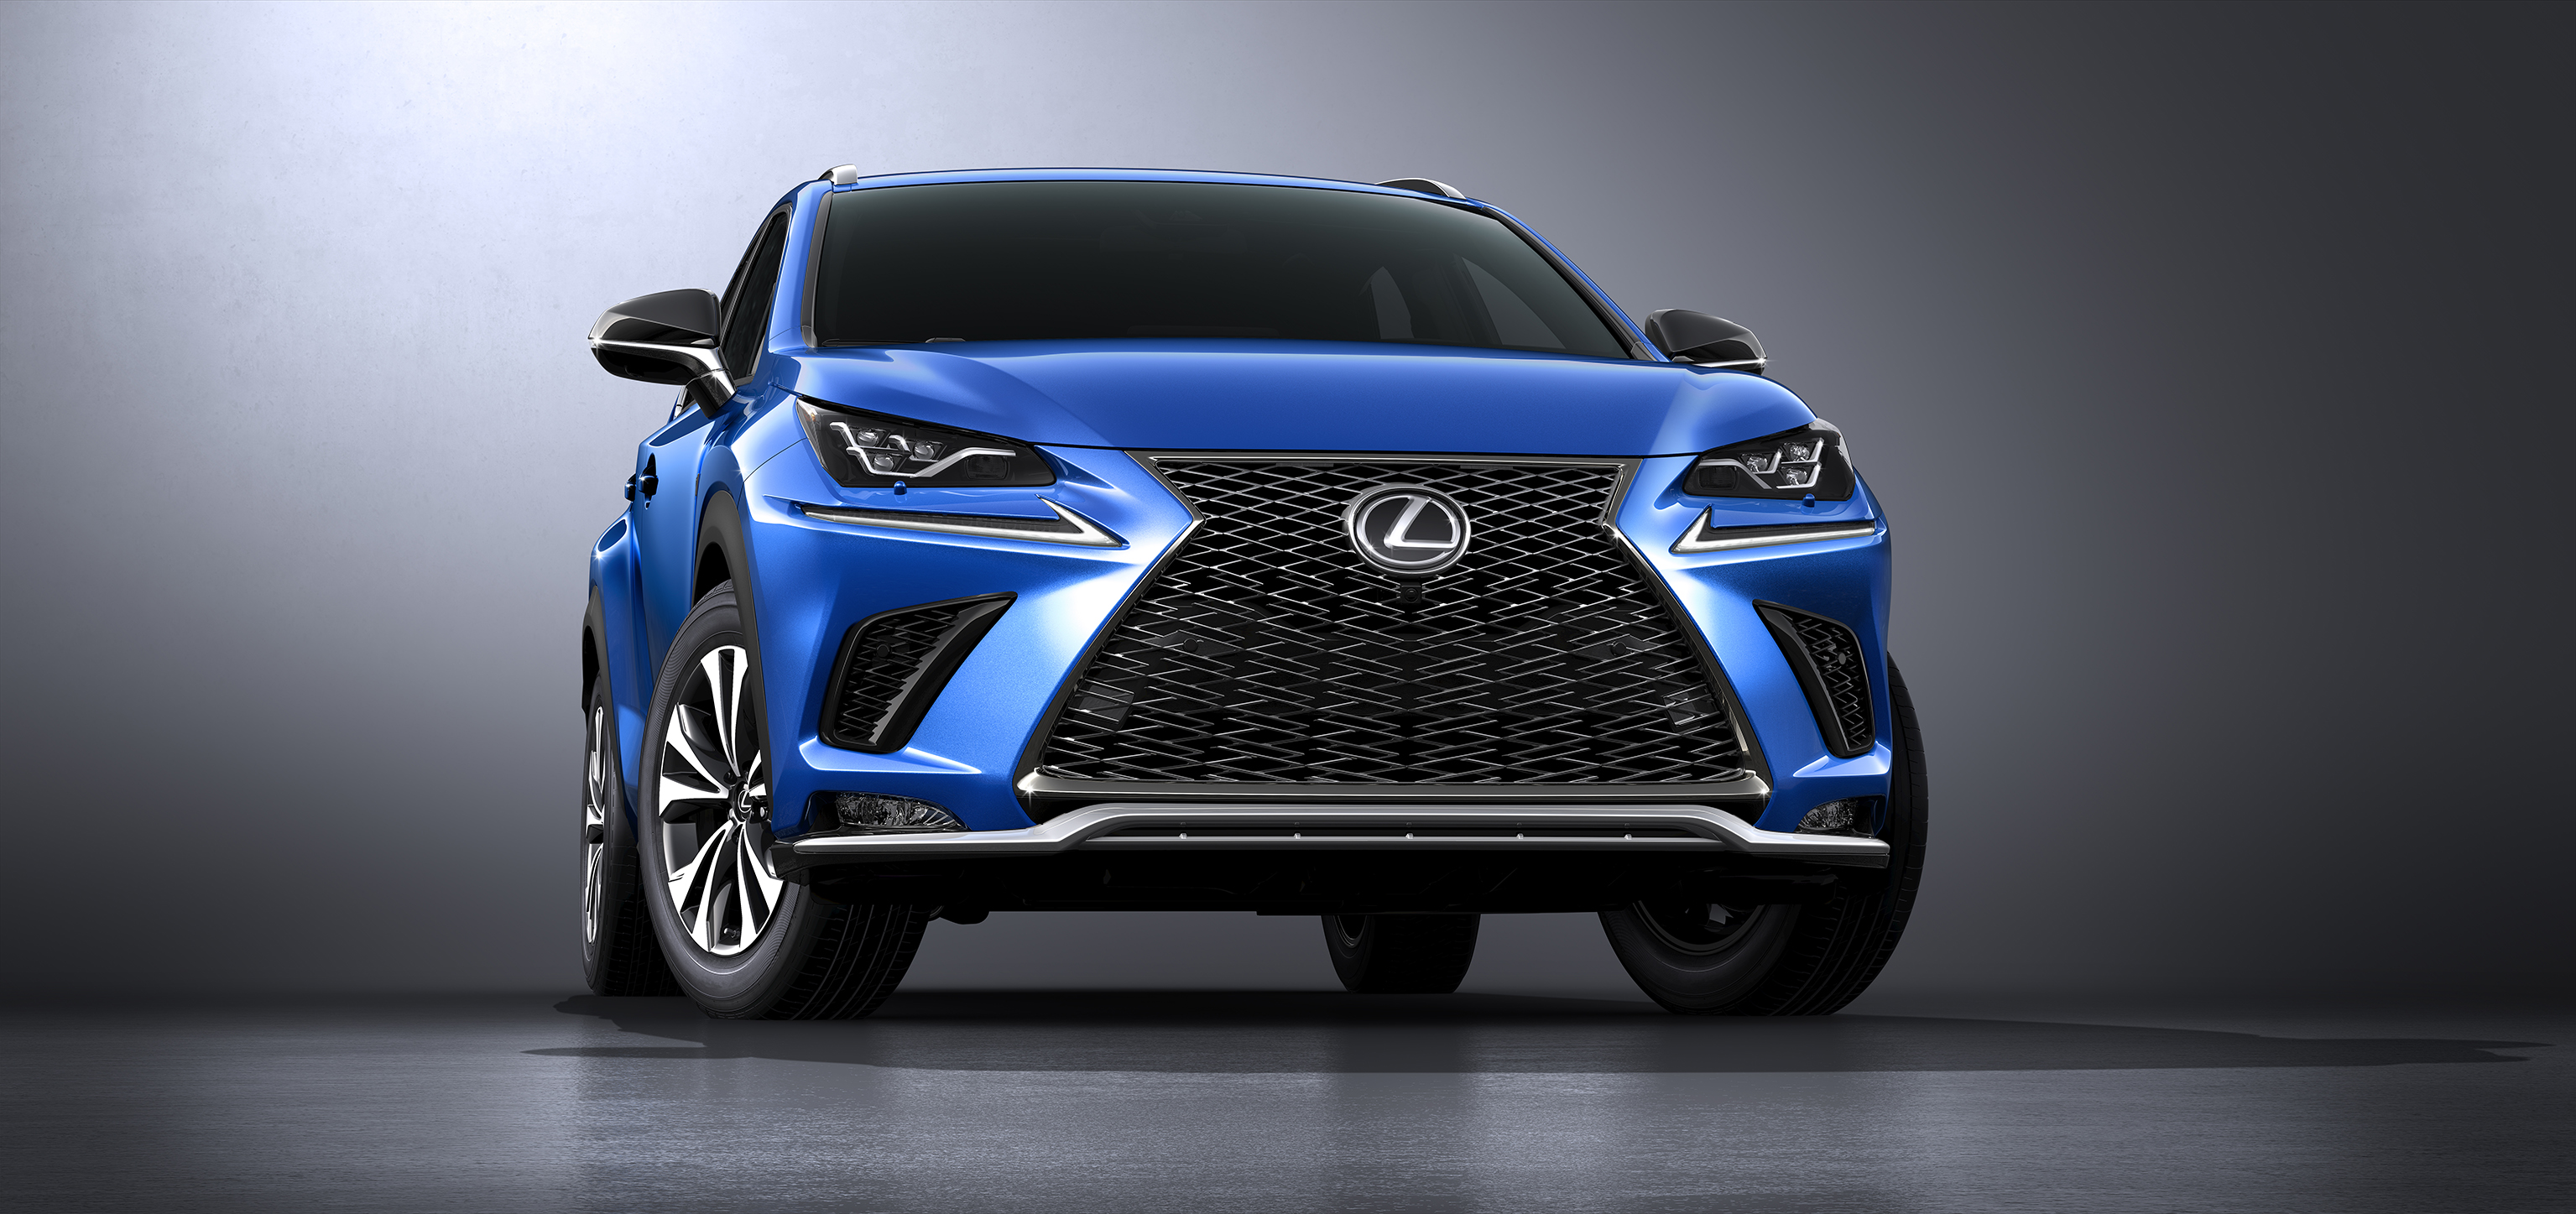 st smithtown service lexus the departments experience in our meetourdepartments of sales true lease meet begins here